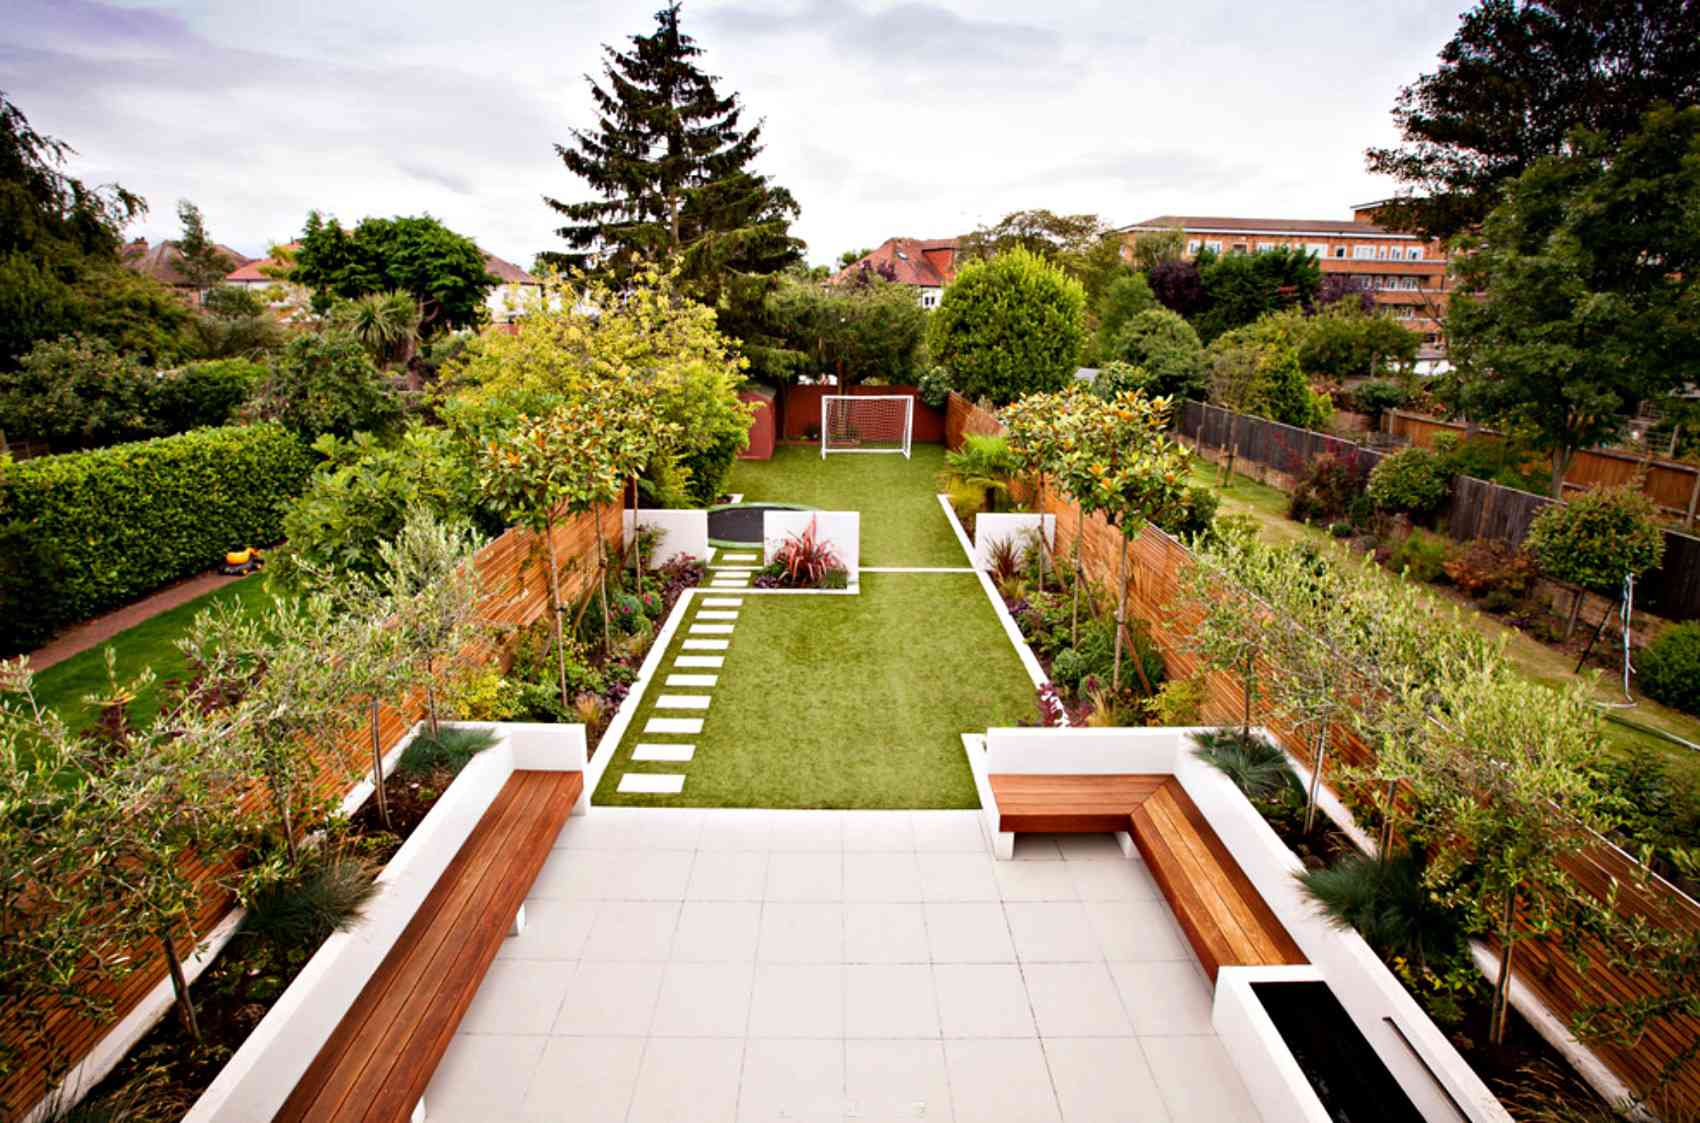 Best backyard landscaping ideas #12